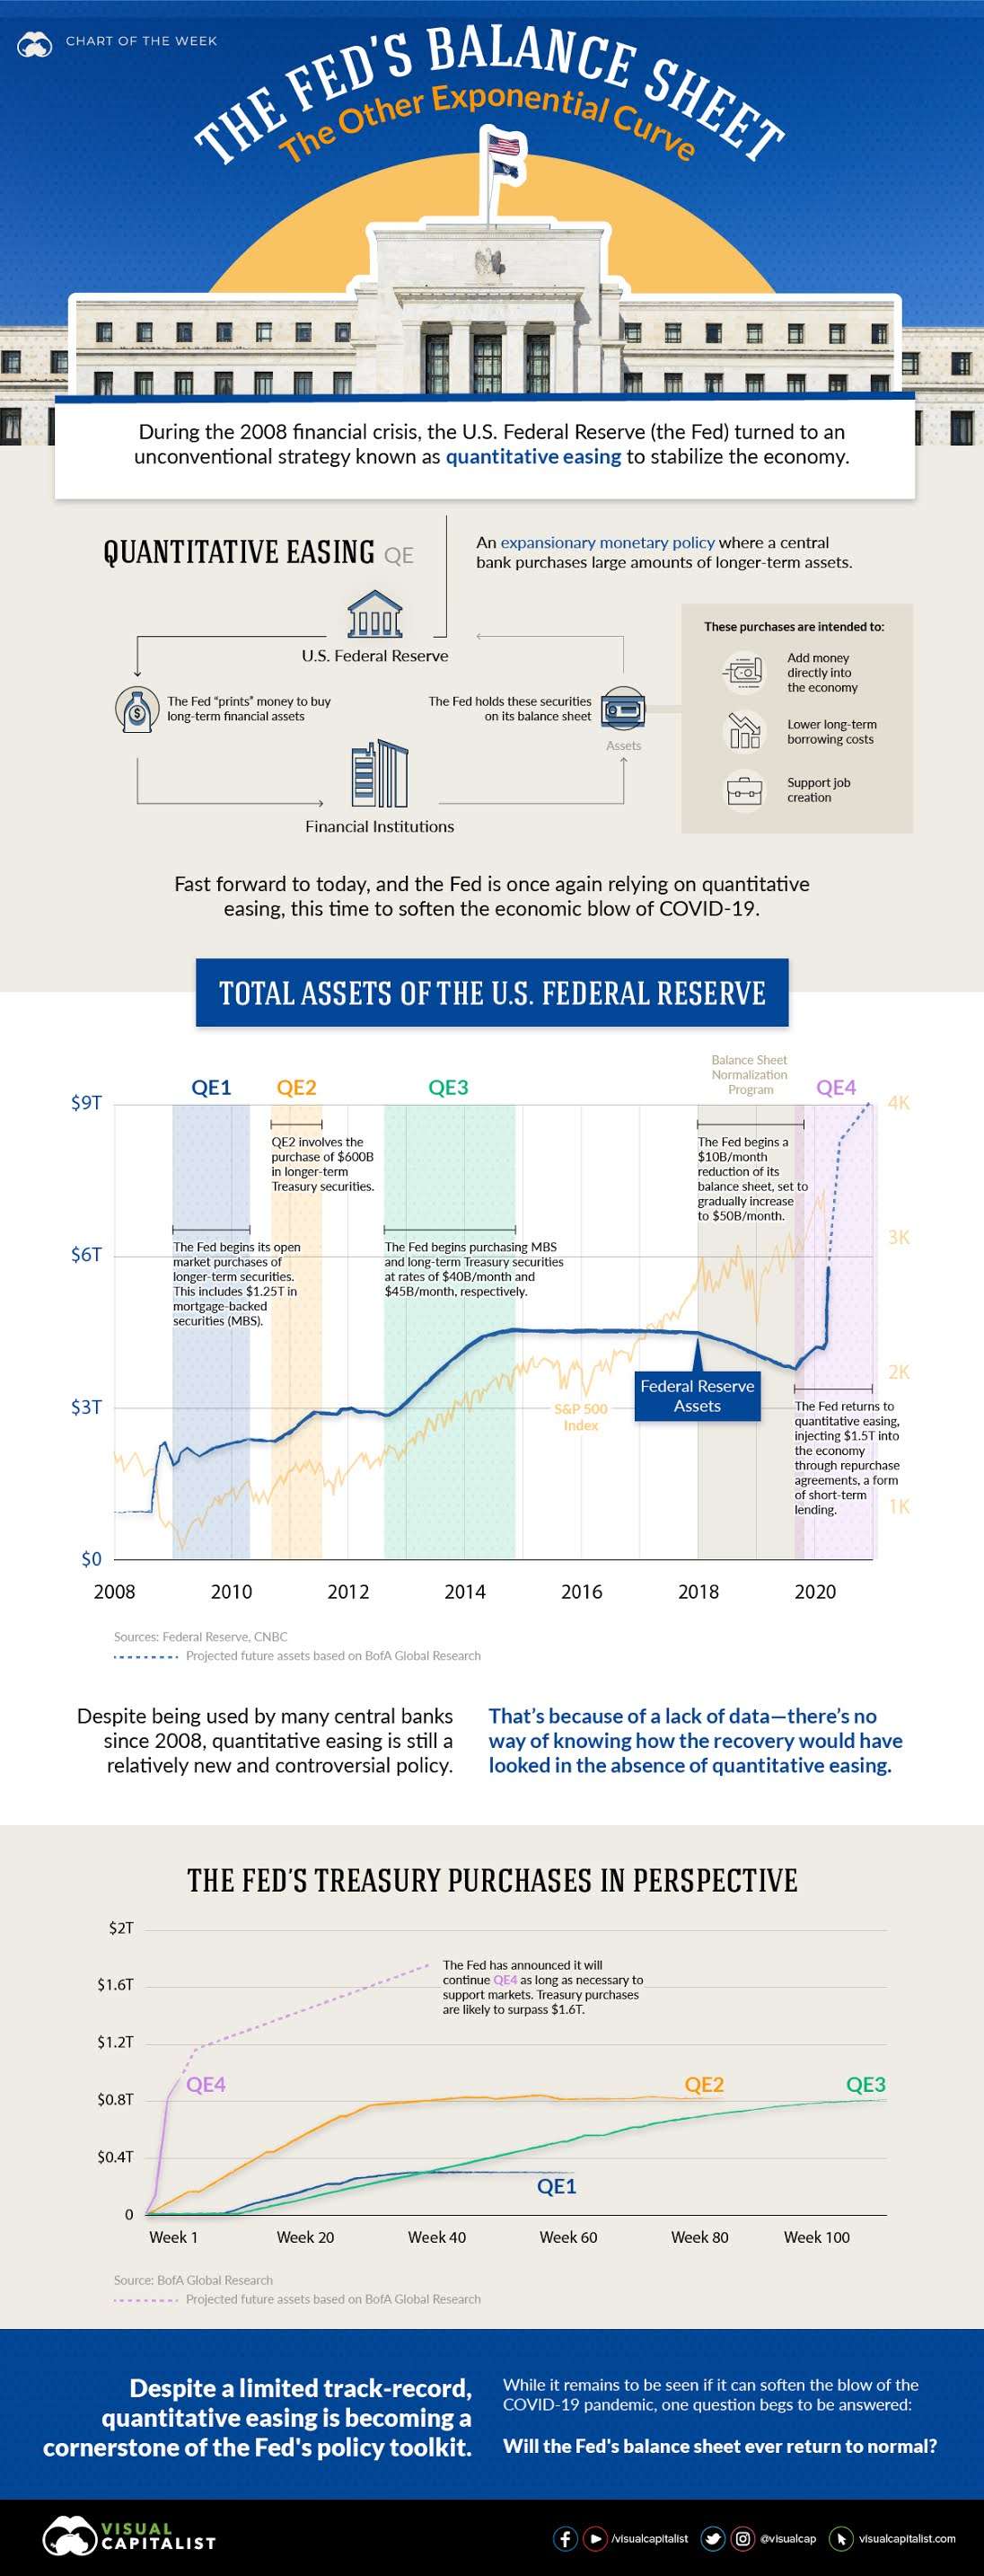 The Fed's Balance Sheet: The Other Exponential Curve #infgraphic